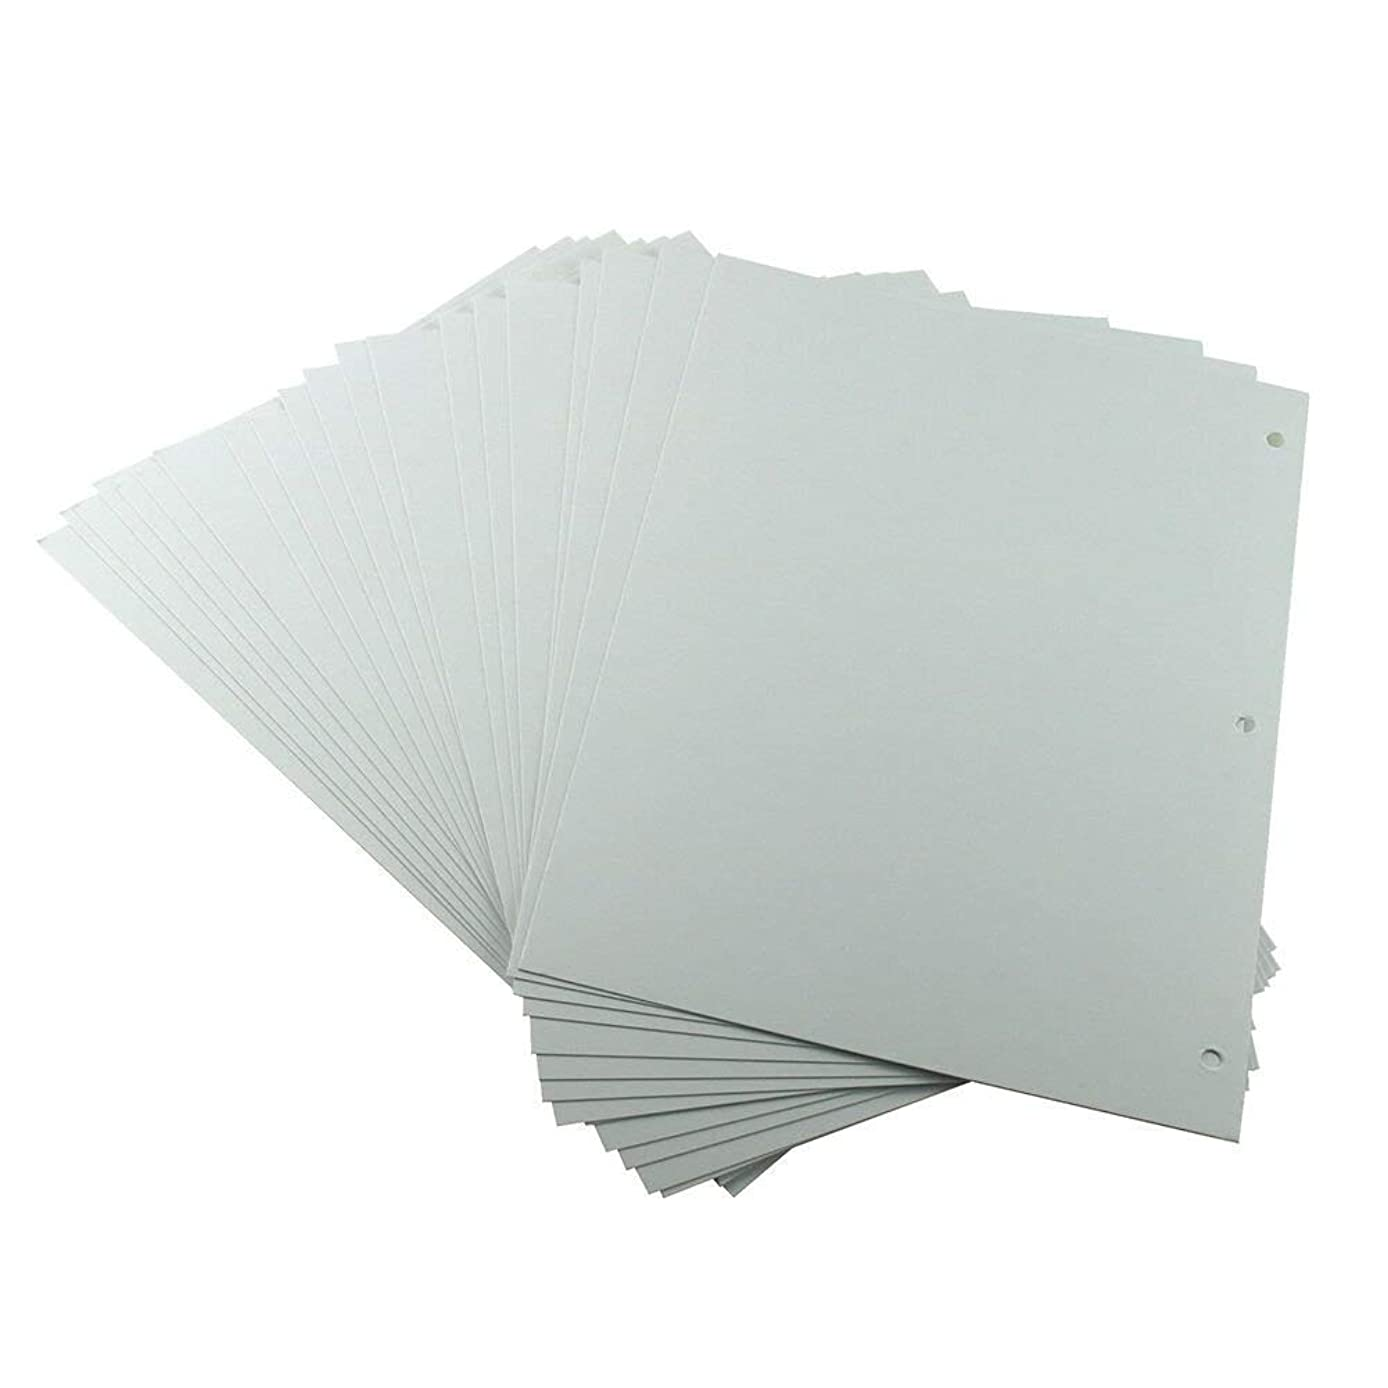 XIUJUAN Scrapbooking Paper 26 x 18cm, White Refill Pages for Scrapbook Album 27.5 x 20.5cm, 20pcs (for Butterfly Girl Large)